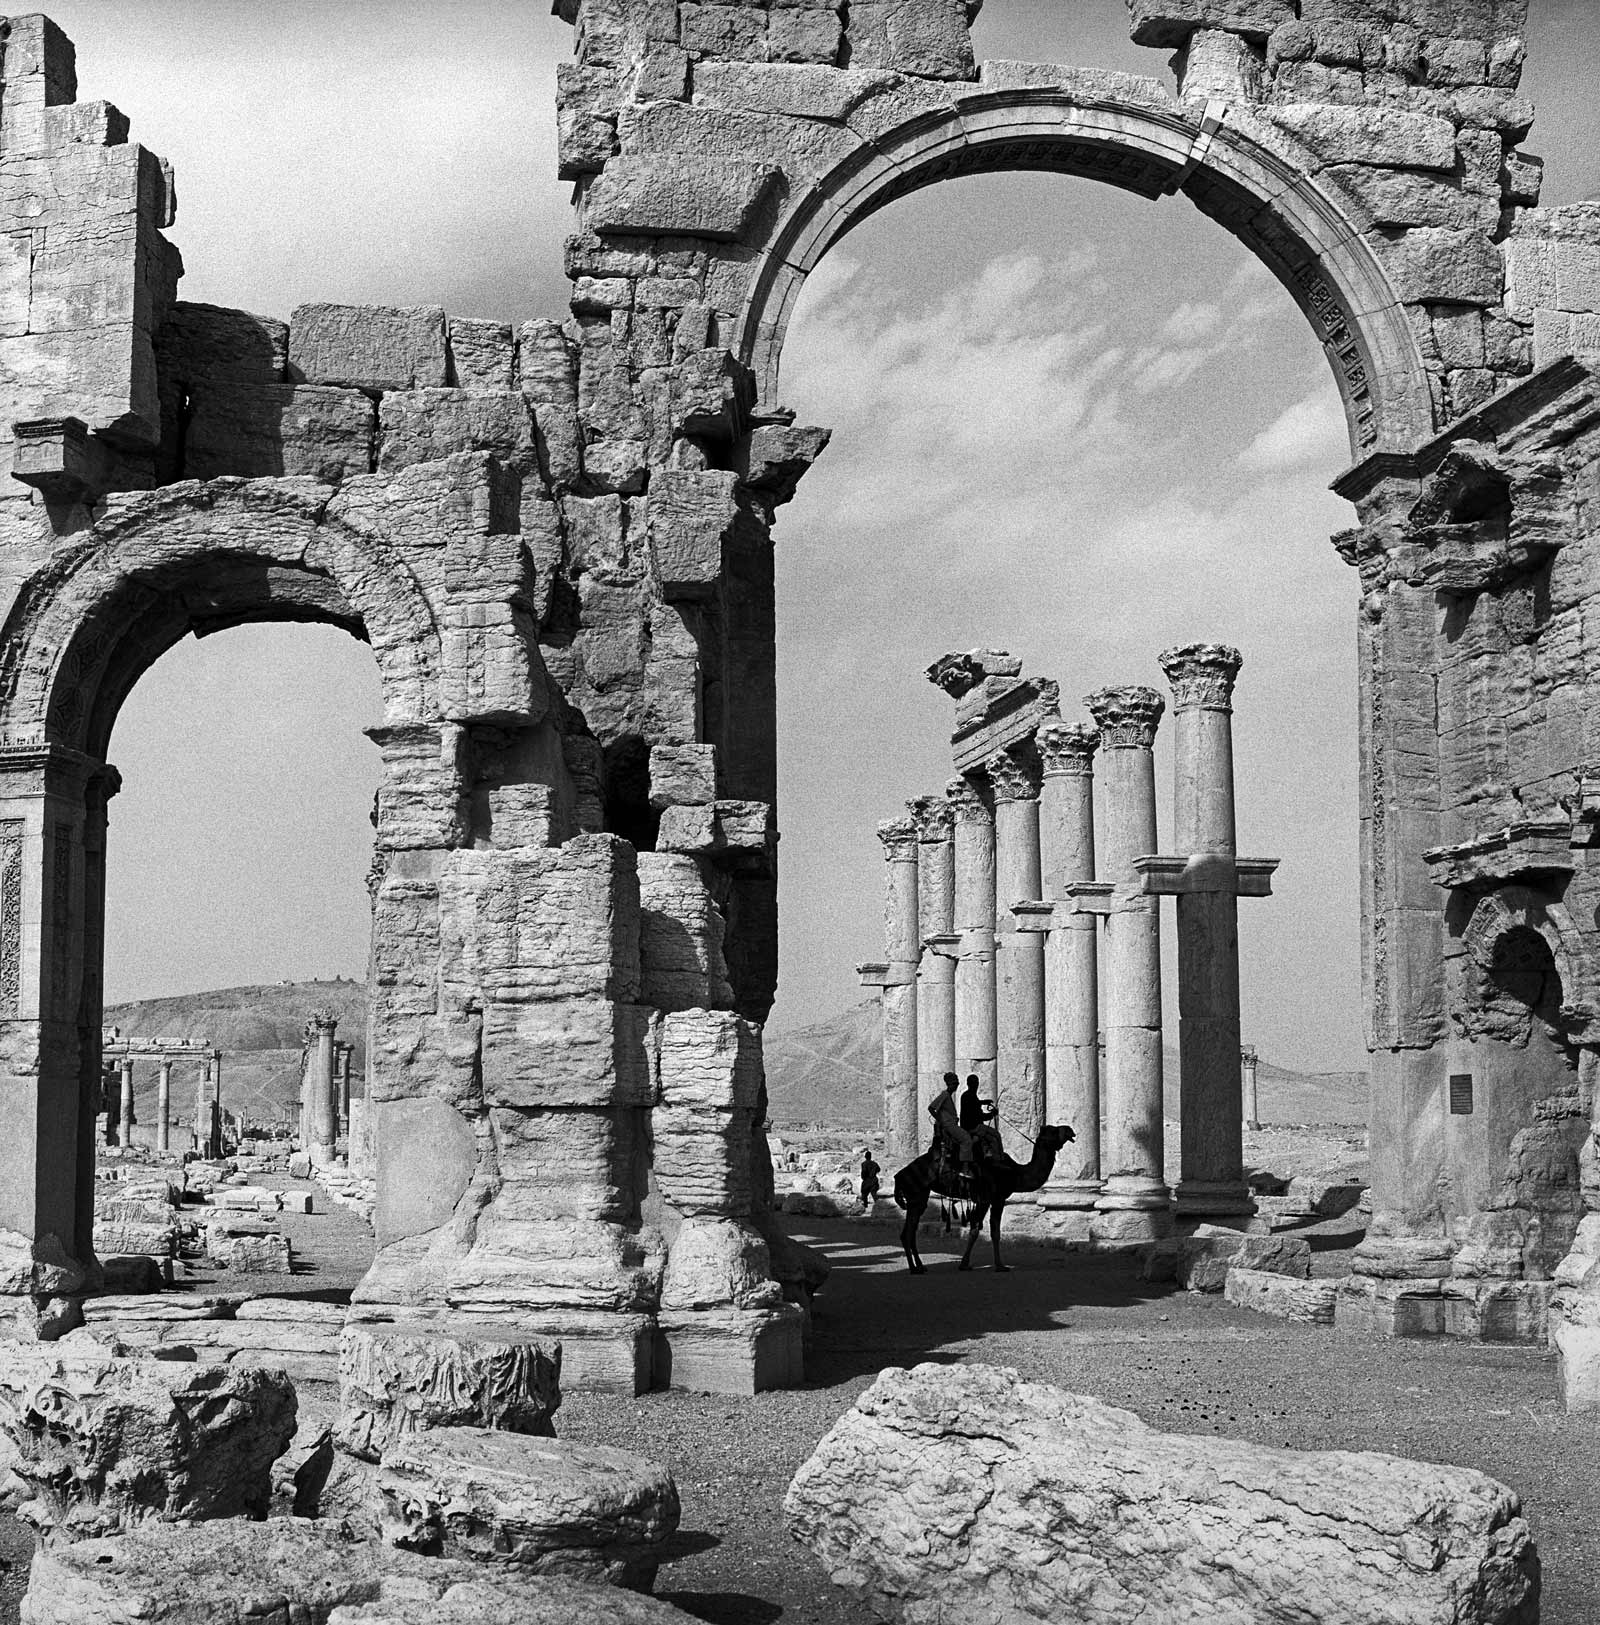 Syria's Monumental Loss | by Muhammad Idrees Ahmad | NYR Daily | The New York Review of Books